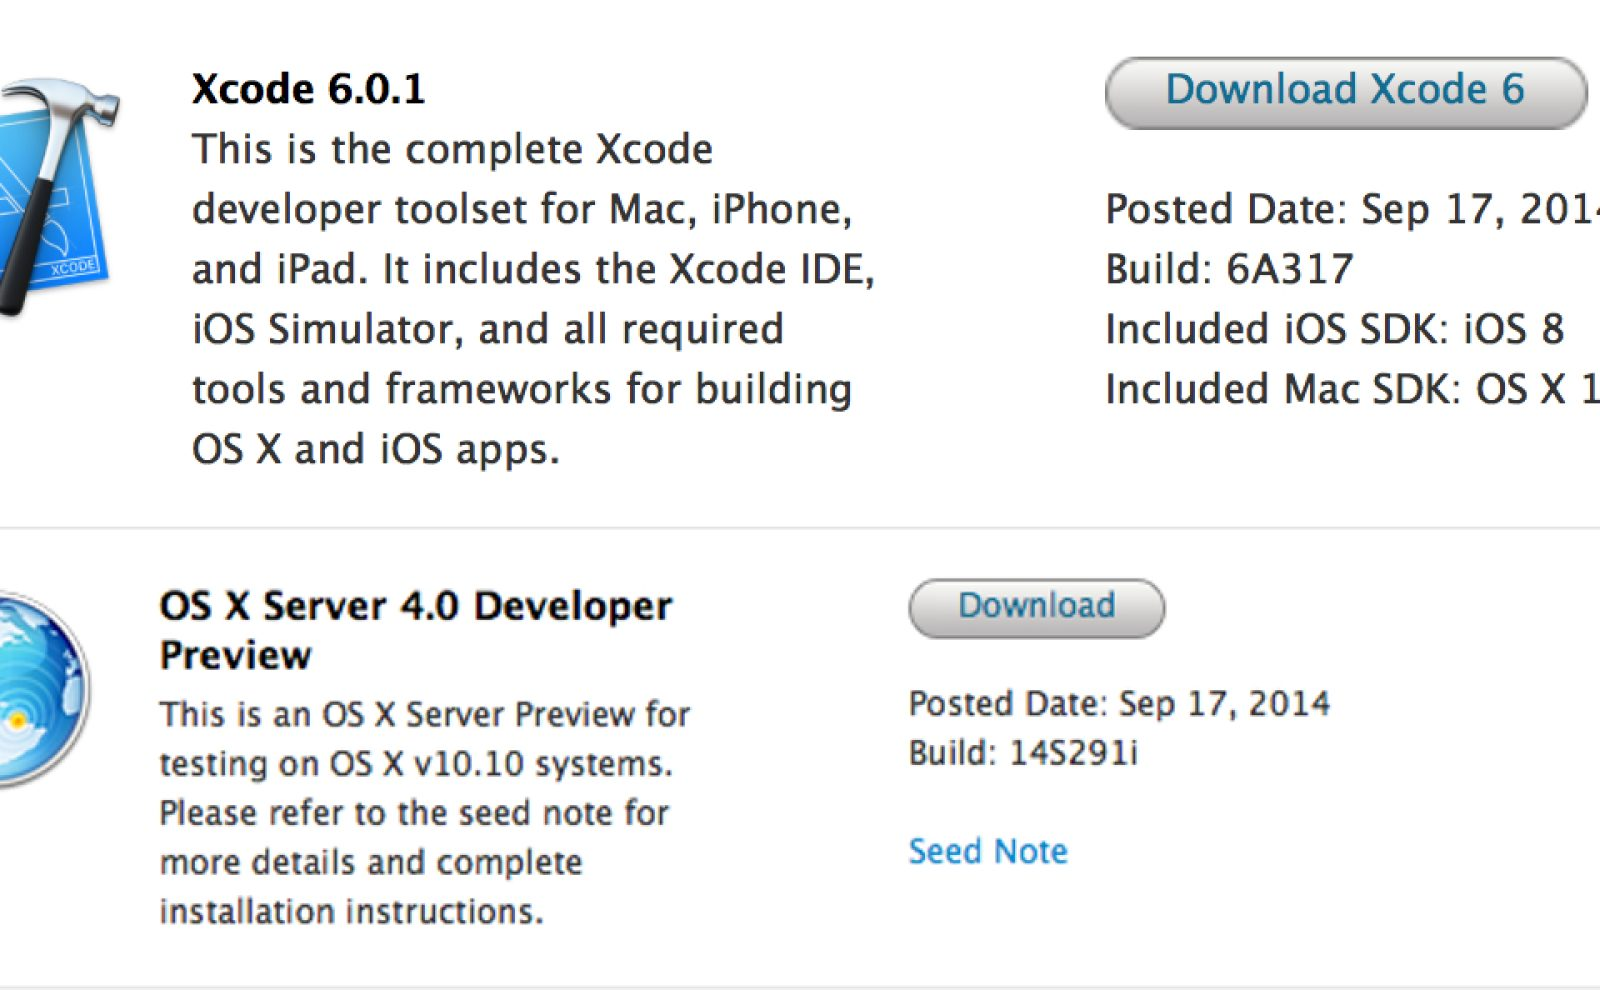 Apple releases Xcode 6 0 1 to the App Store, seeds new OS X